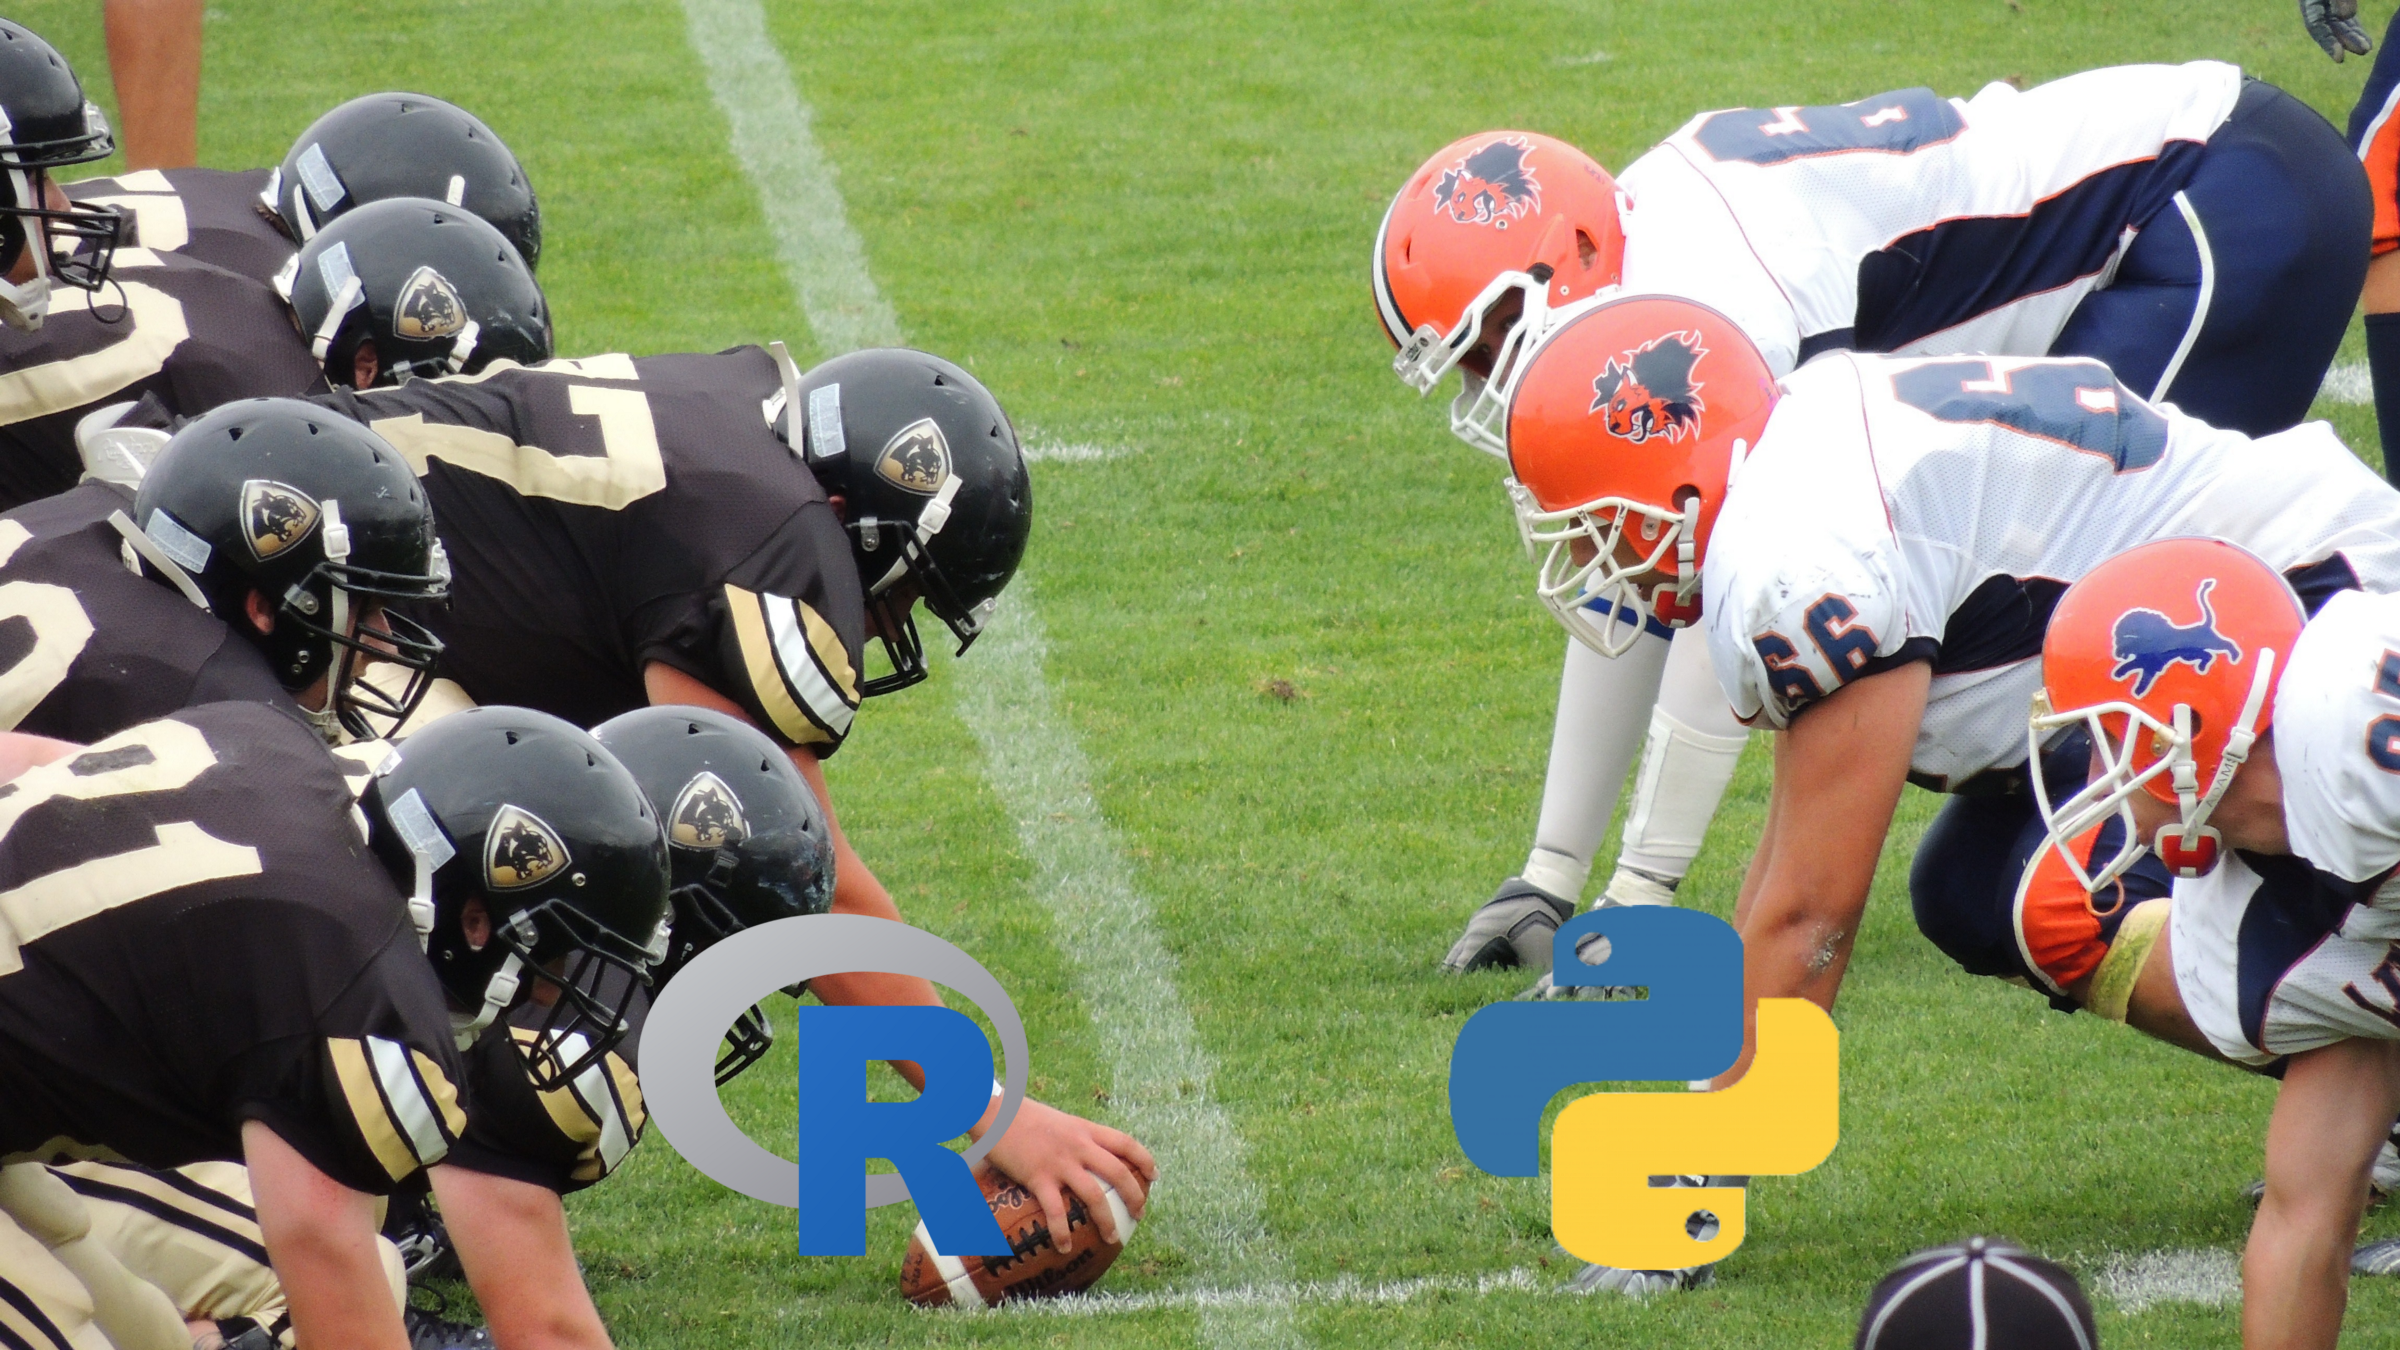 From 'R vs Python' to 'R and Python'